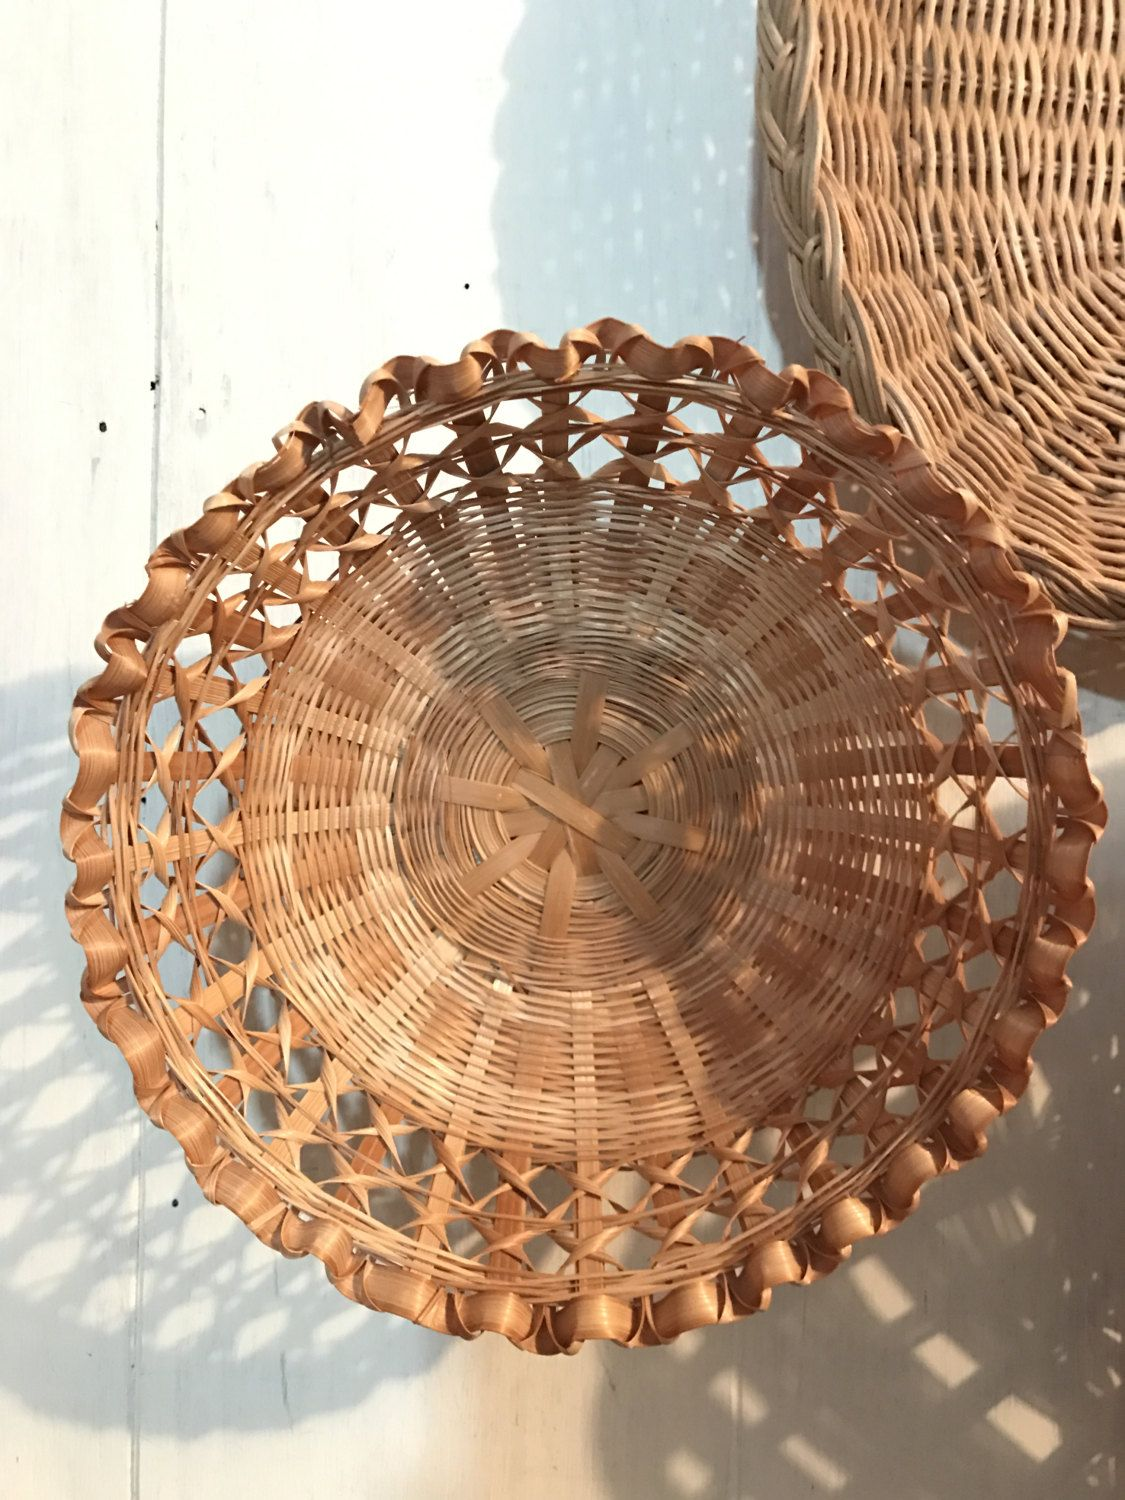 Wall Baskets Decor woven rattan basket - small round wall basket - boho wall decor